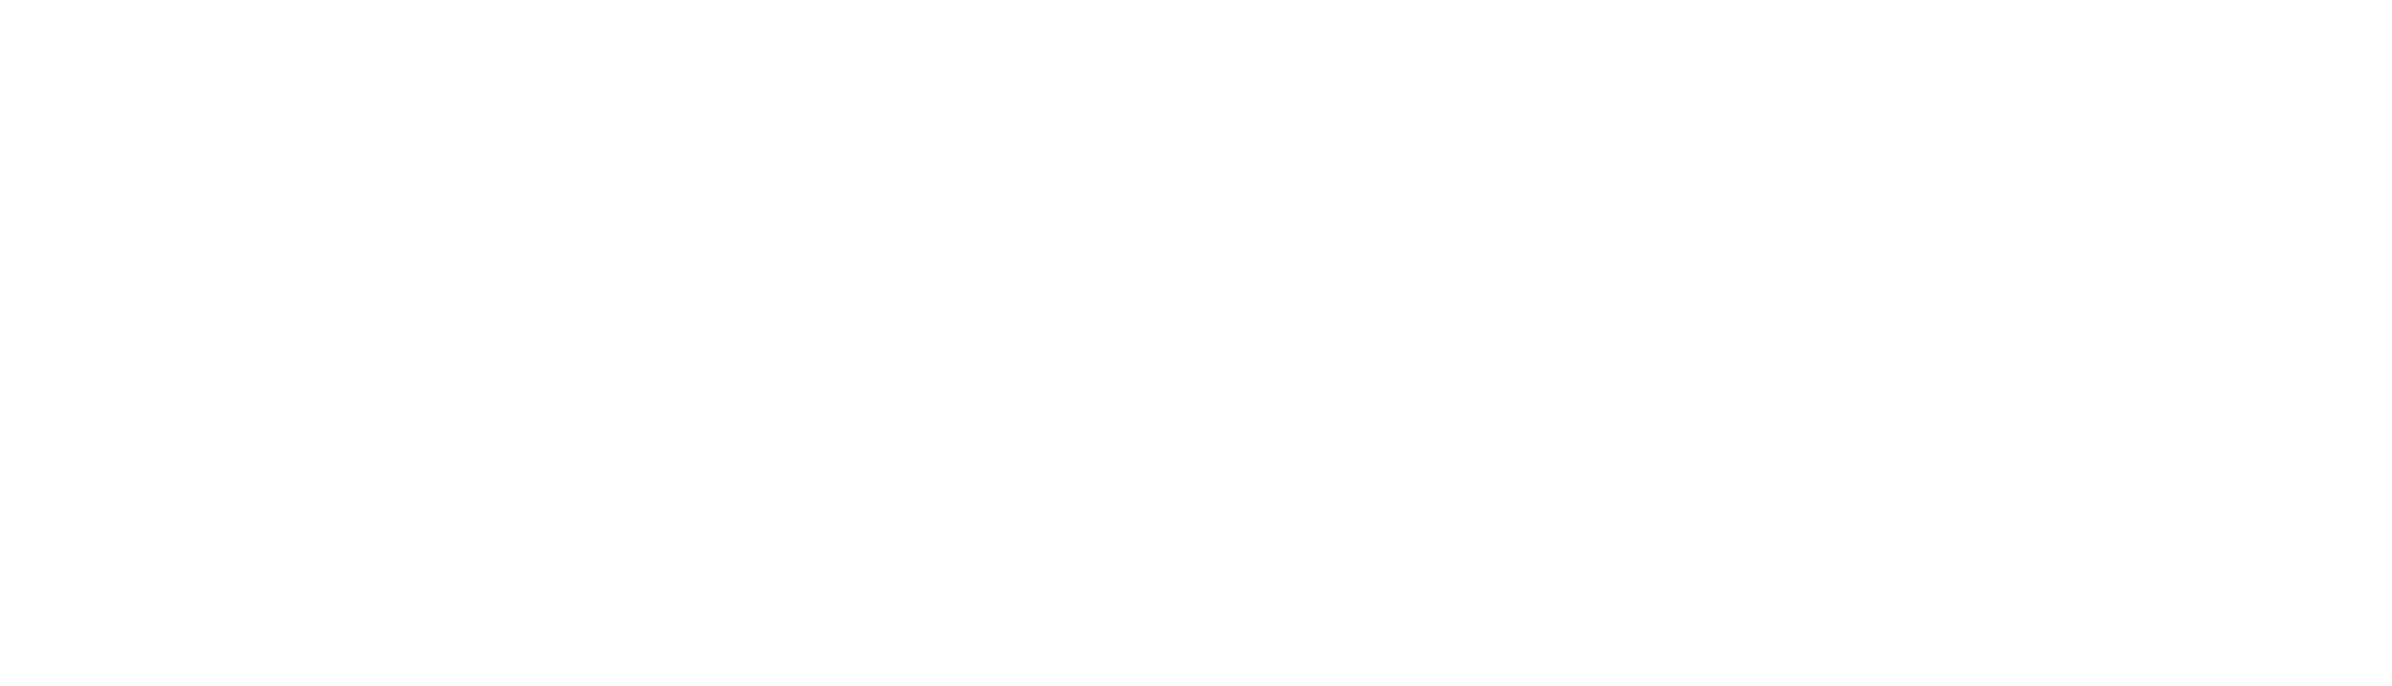 FiveStar Customer Service Strategies